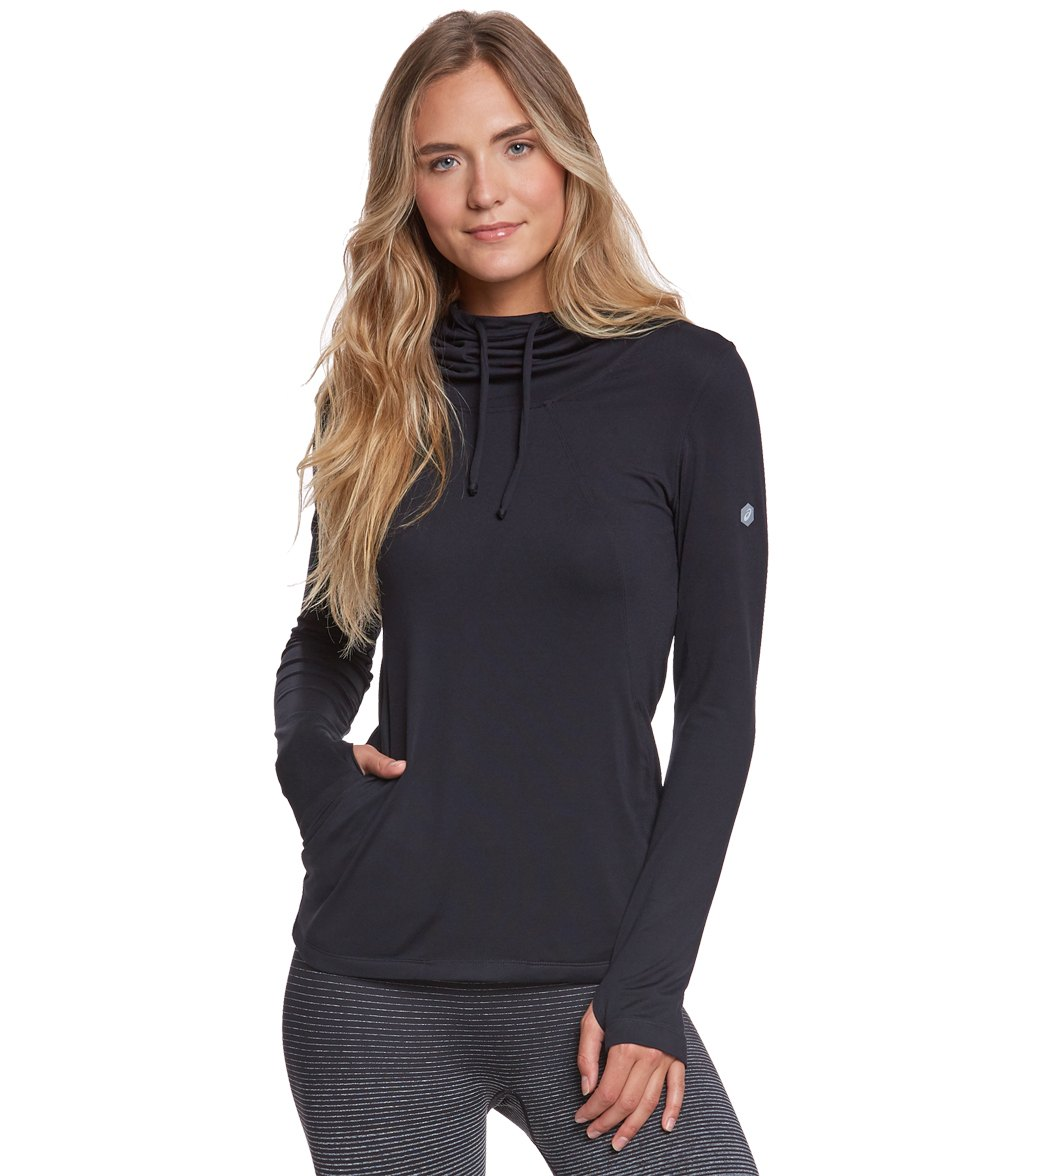 largest selection of 2019 reliable quality convenience goods Asics Women's Thermopolis Hoodie